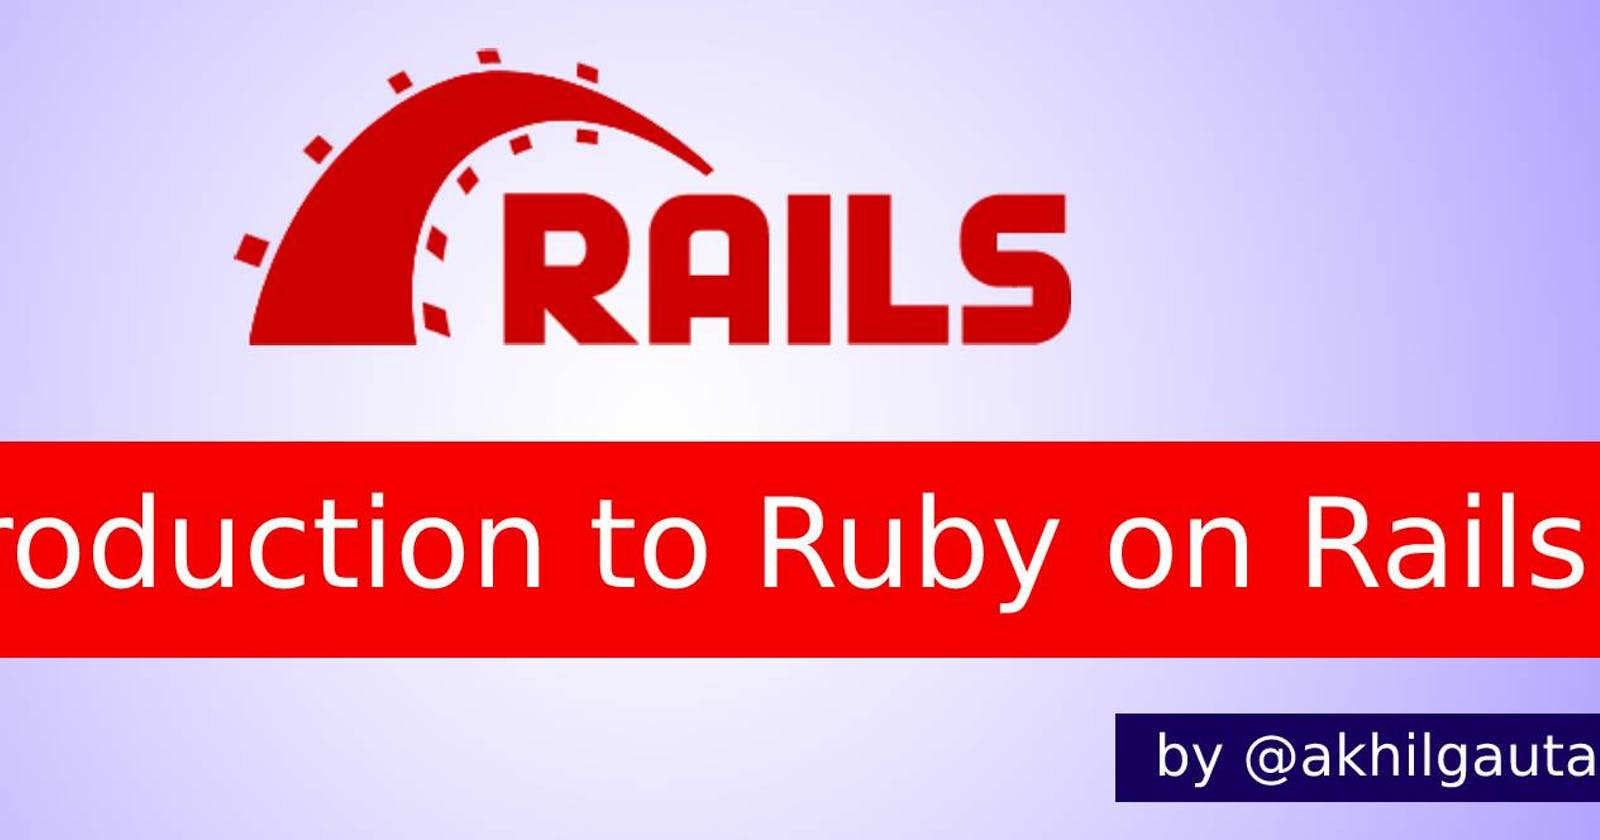 Ruby on Rails: Rome can be built in a day